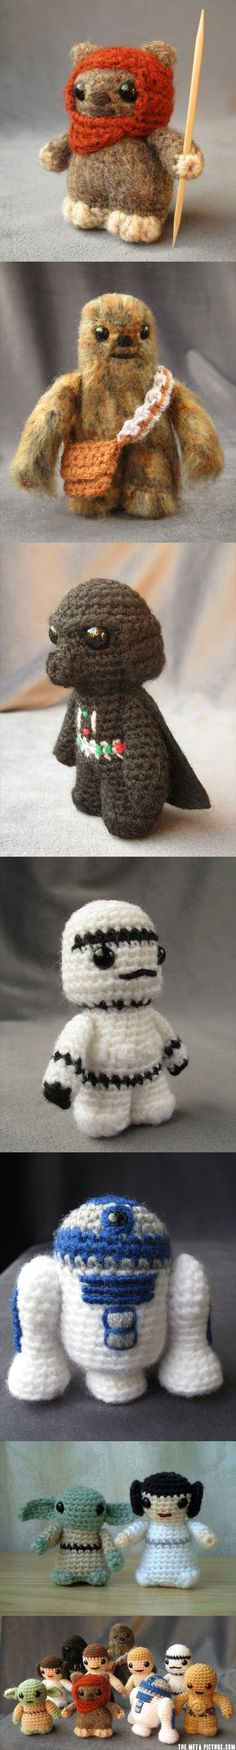 Star Wars knitted figures